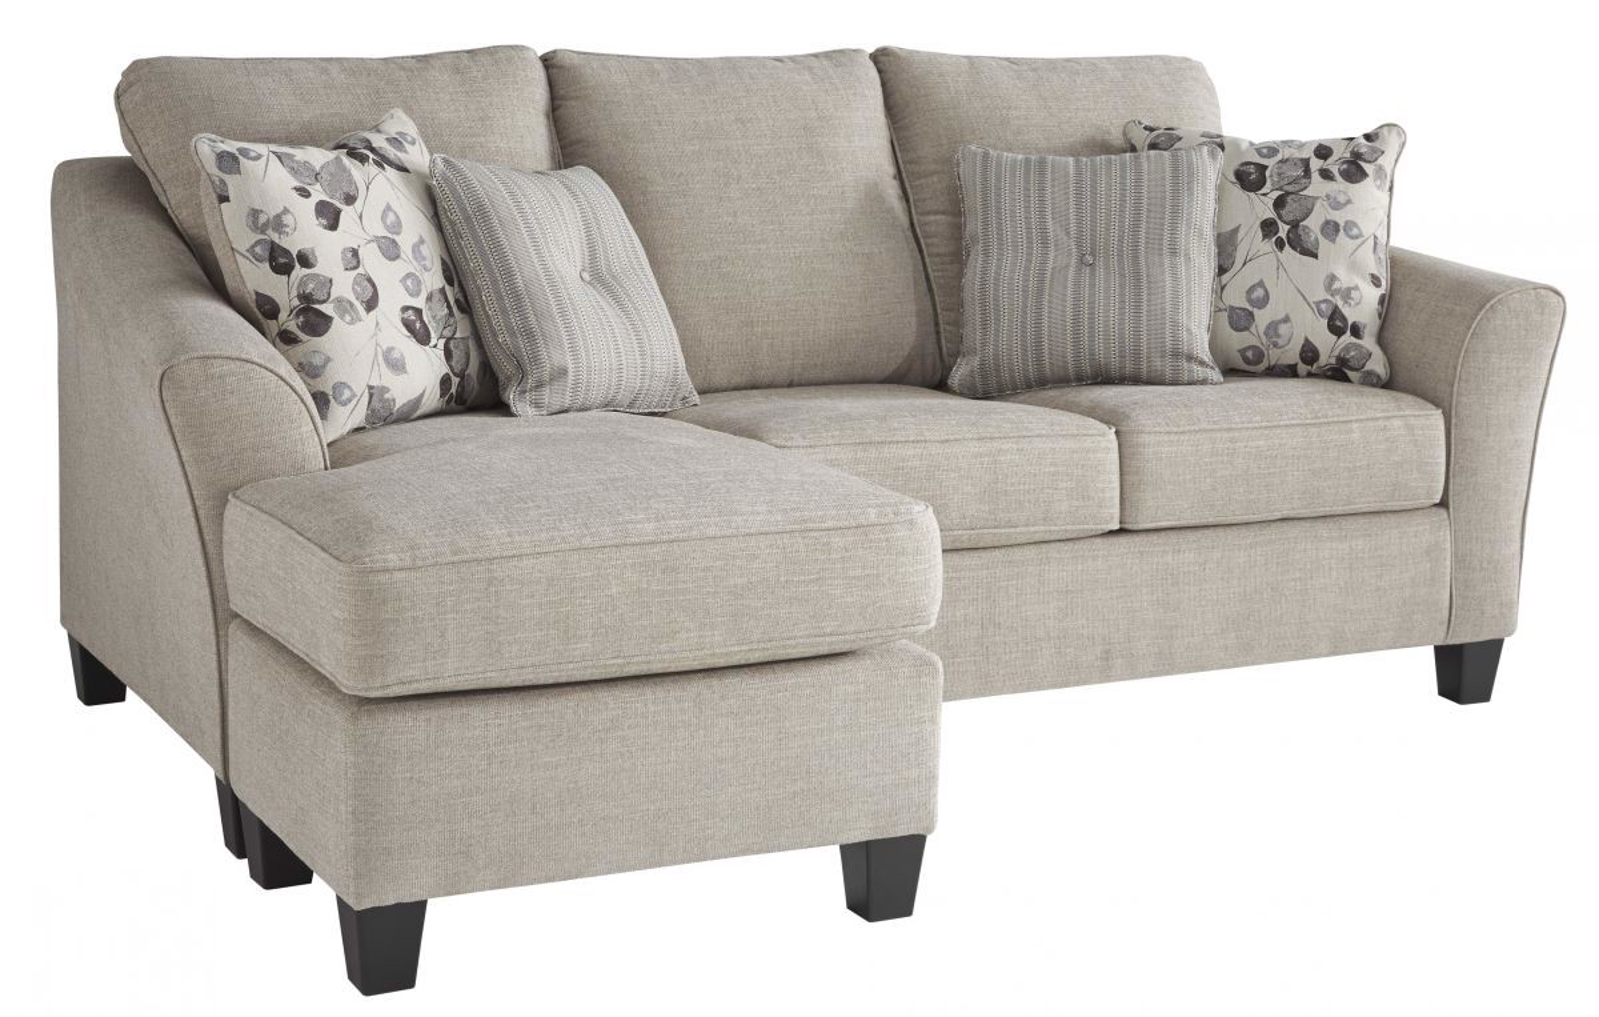 Picture of Abney Sofa Chaise